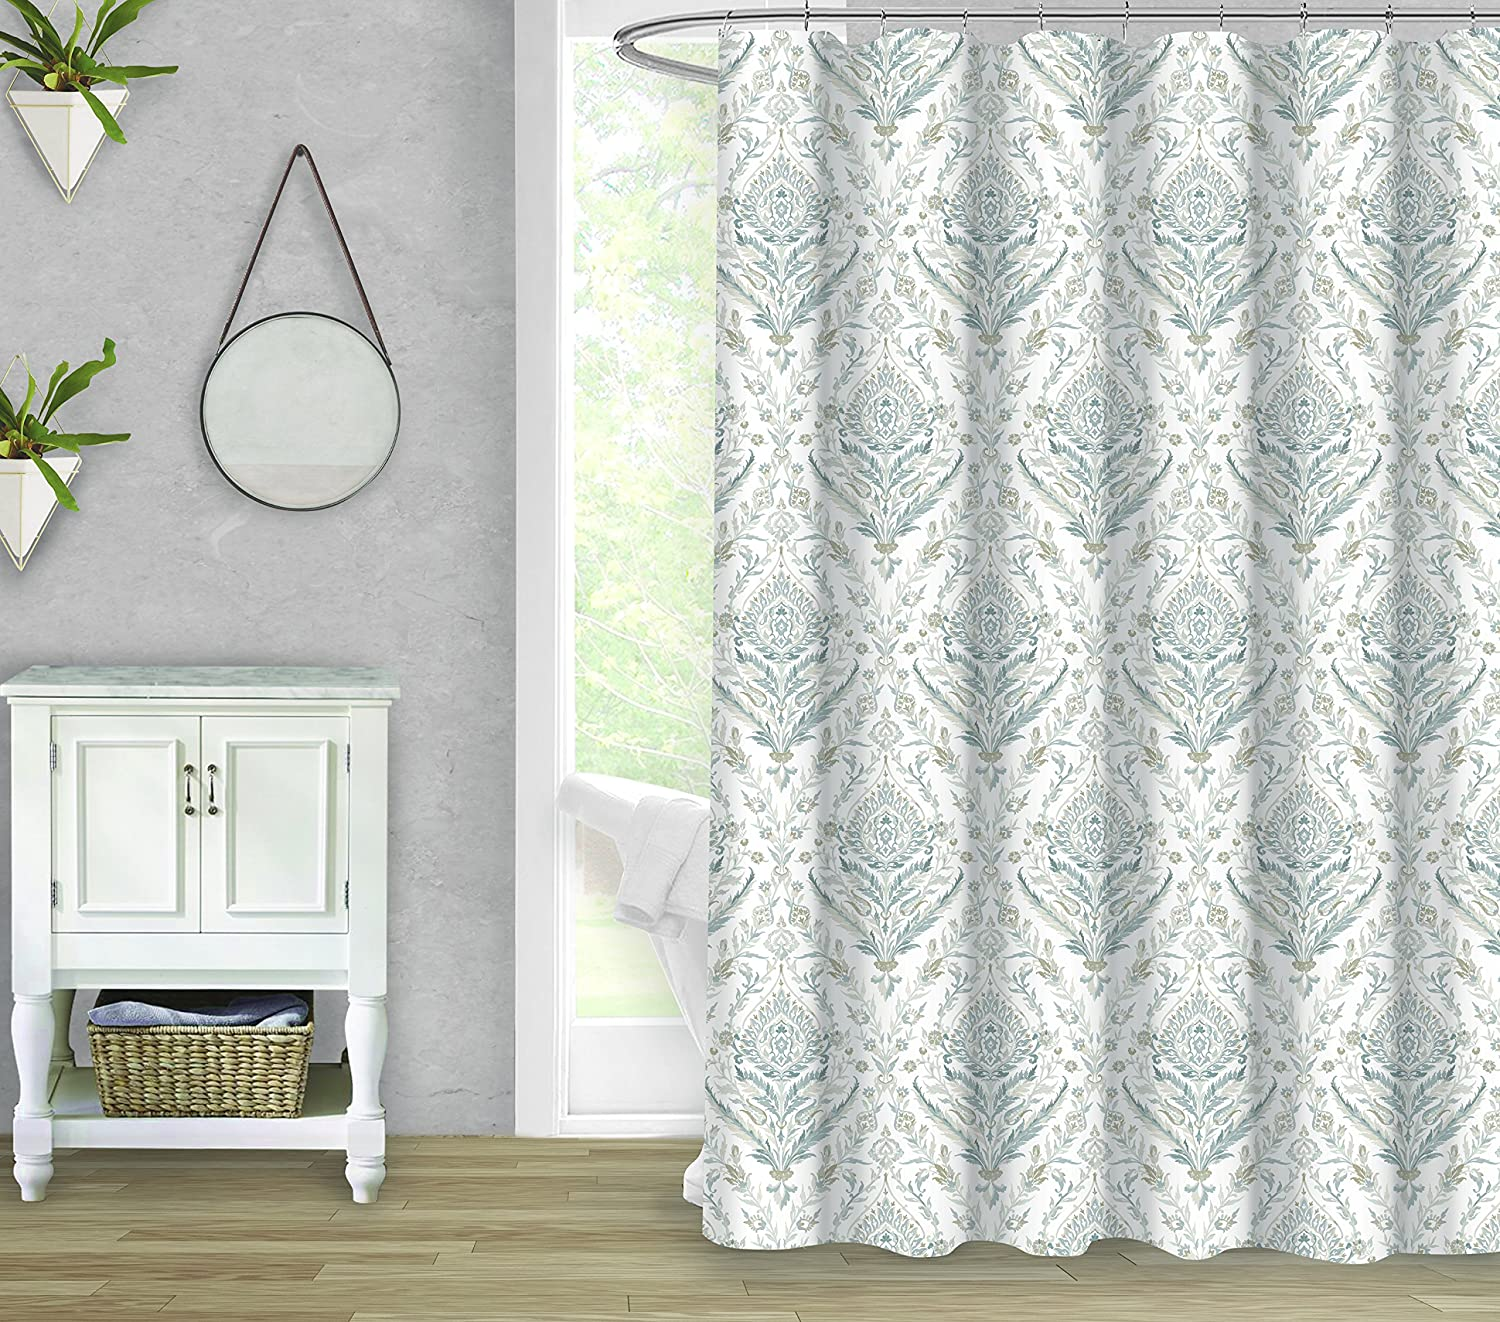 shower ralph l curtain your large luxury lauren for online rod curtains shopping coastal spa sailor fabric caro shaped brands bathroom price tiered quilted bath master